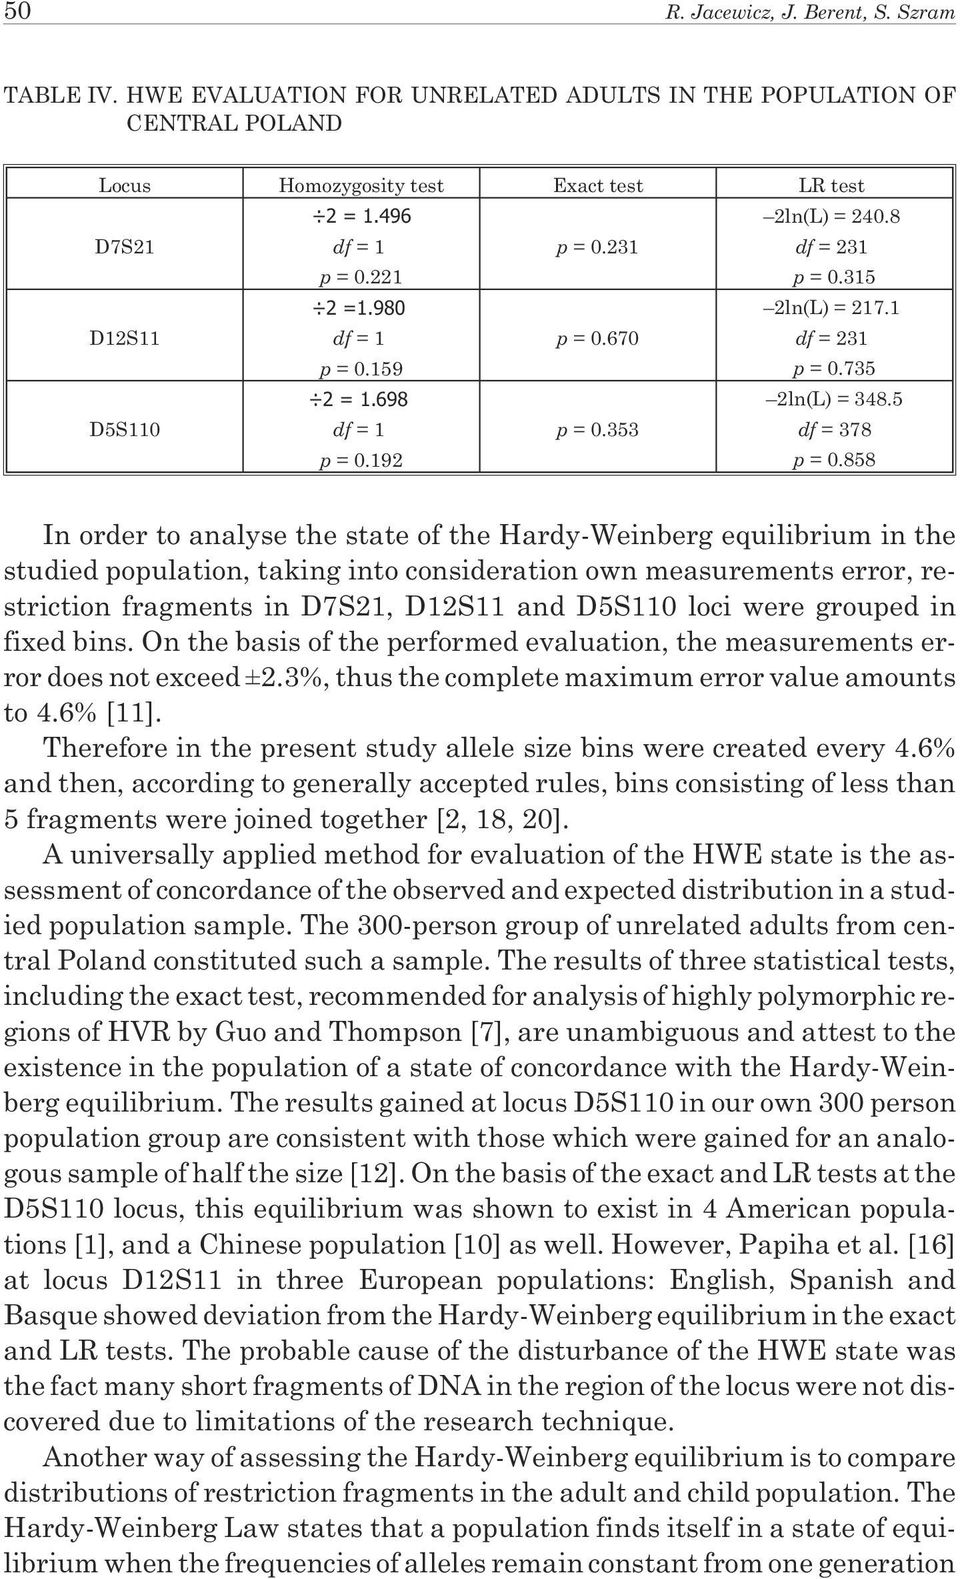 858 In order to analyse the state of the Hardy-Weinberg equilibrium in the studied population, taking into consideration own measurements error, restriction fragments in D7S21, D12S11 and D5S110 loci